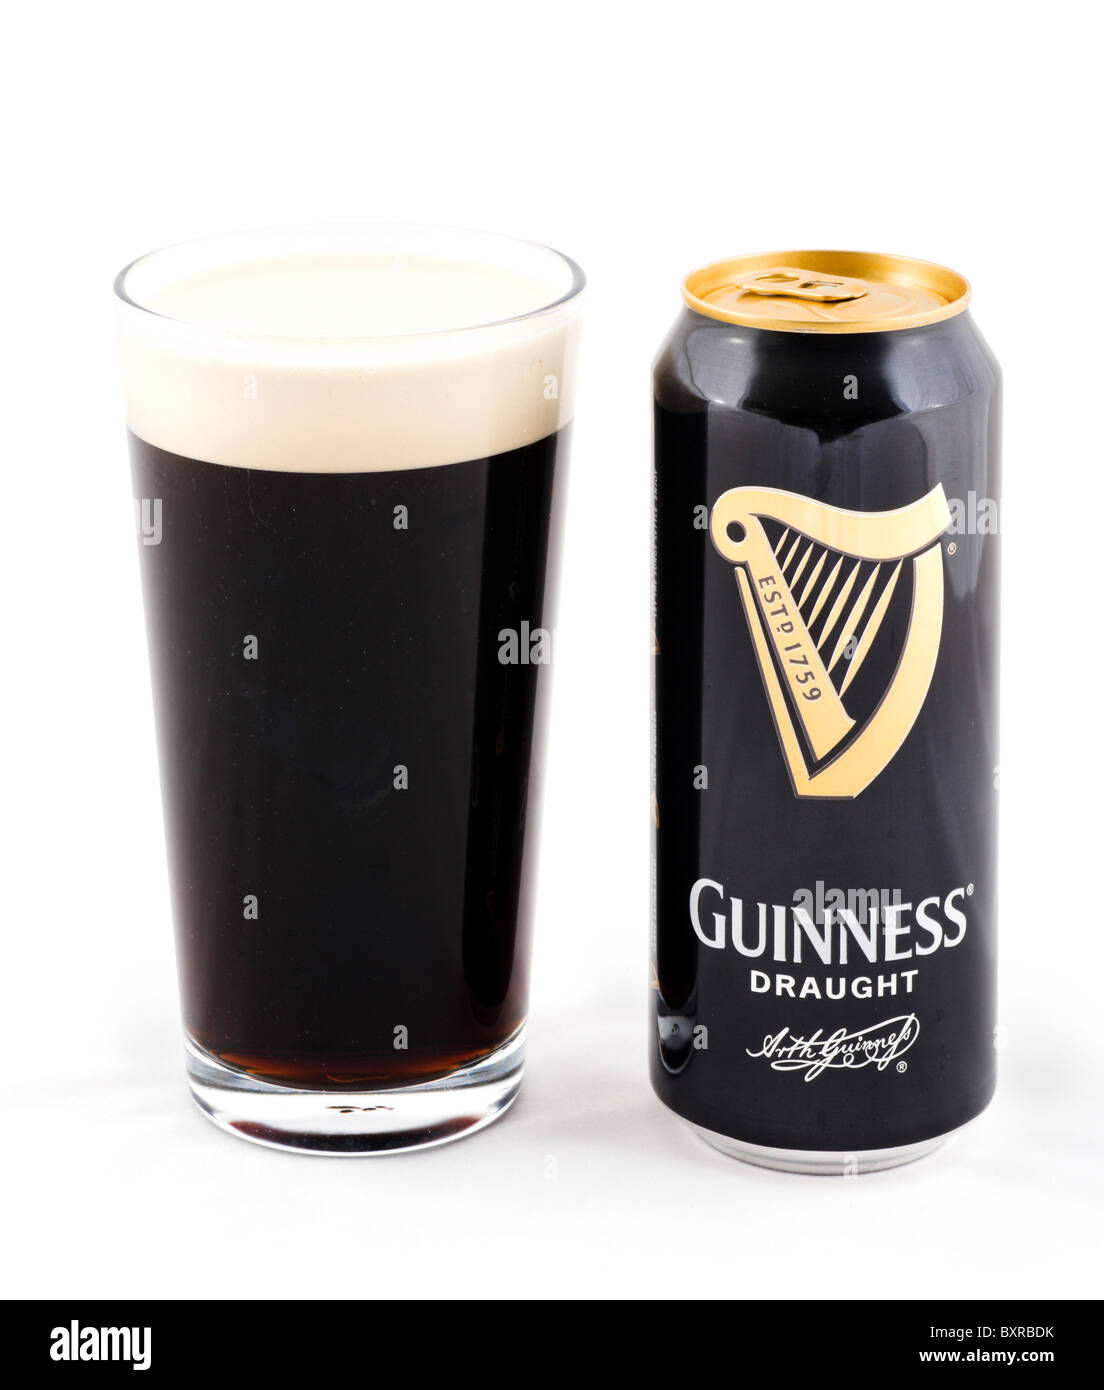 Can and glass of draught Guinness, UK - Stock Image